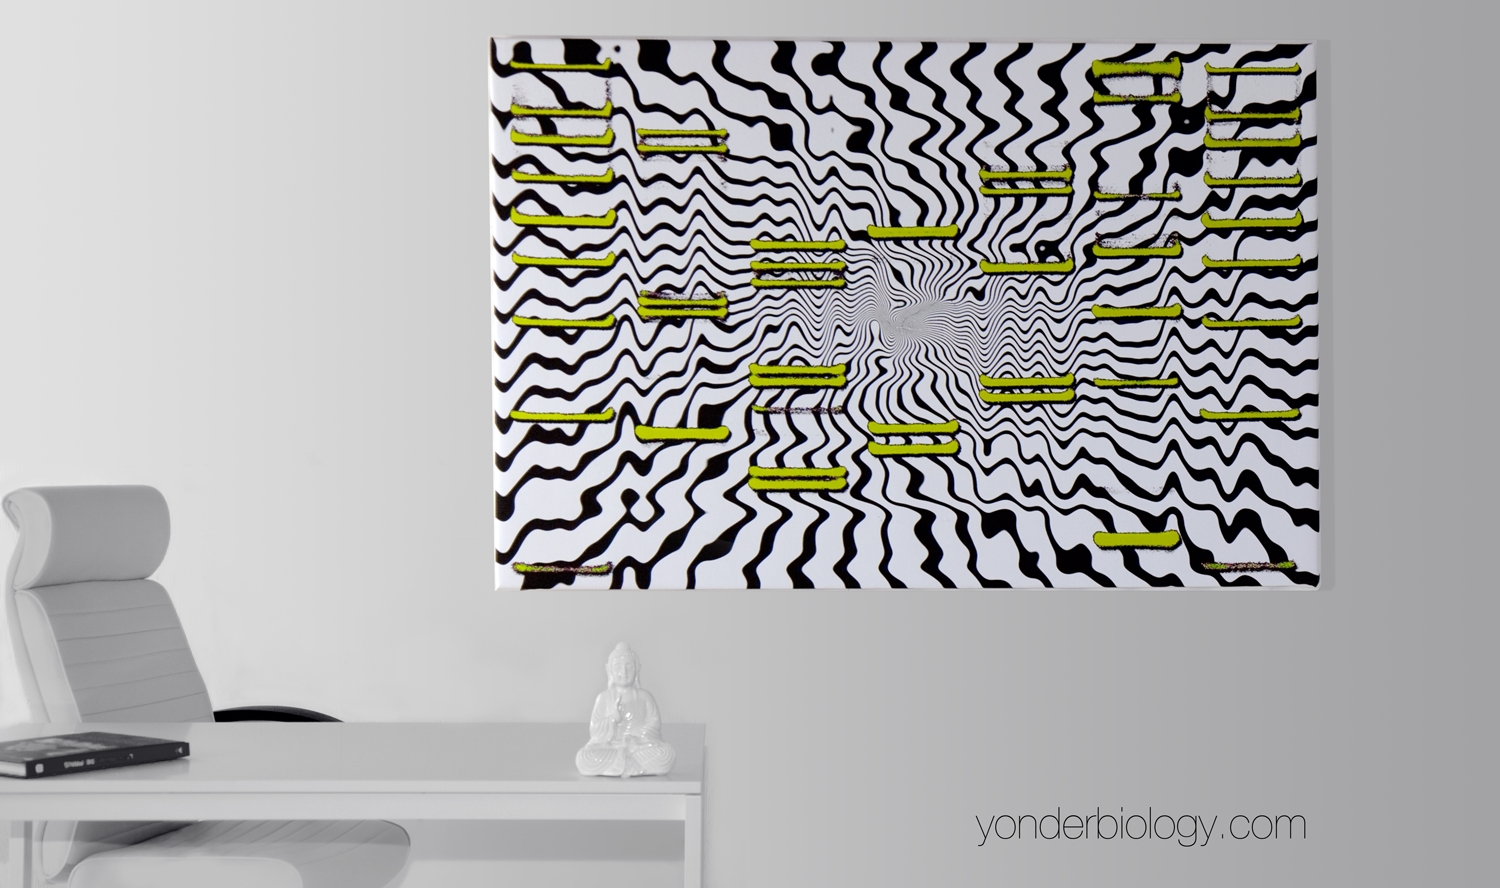 Yonder Launches Neon Dna Art Collection in Dna Wall Art